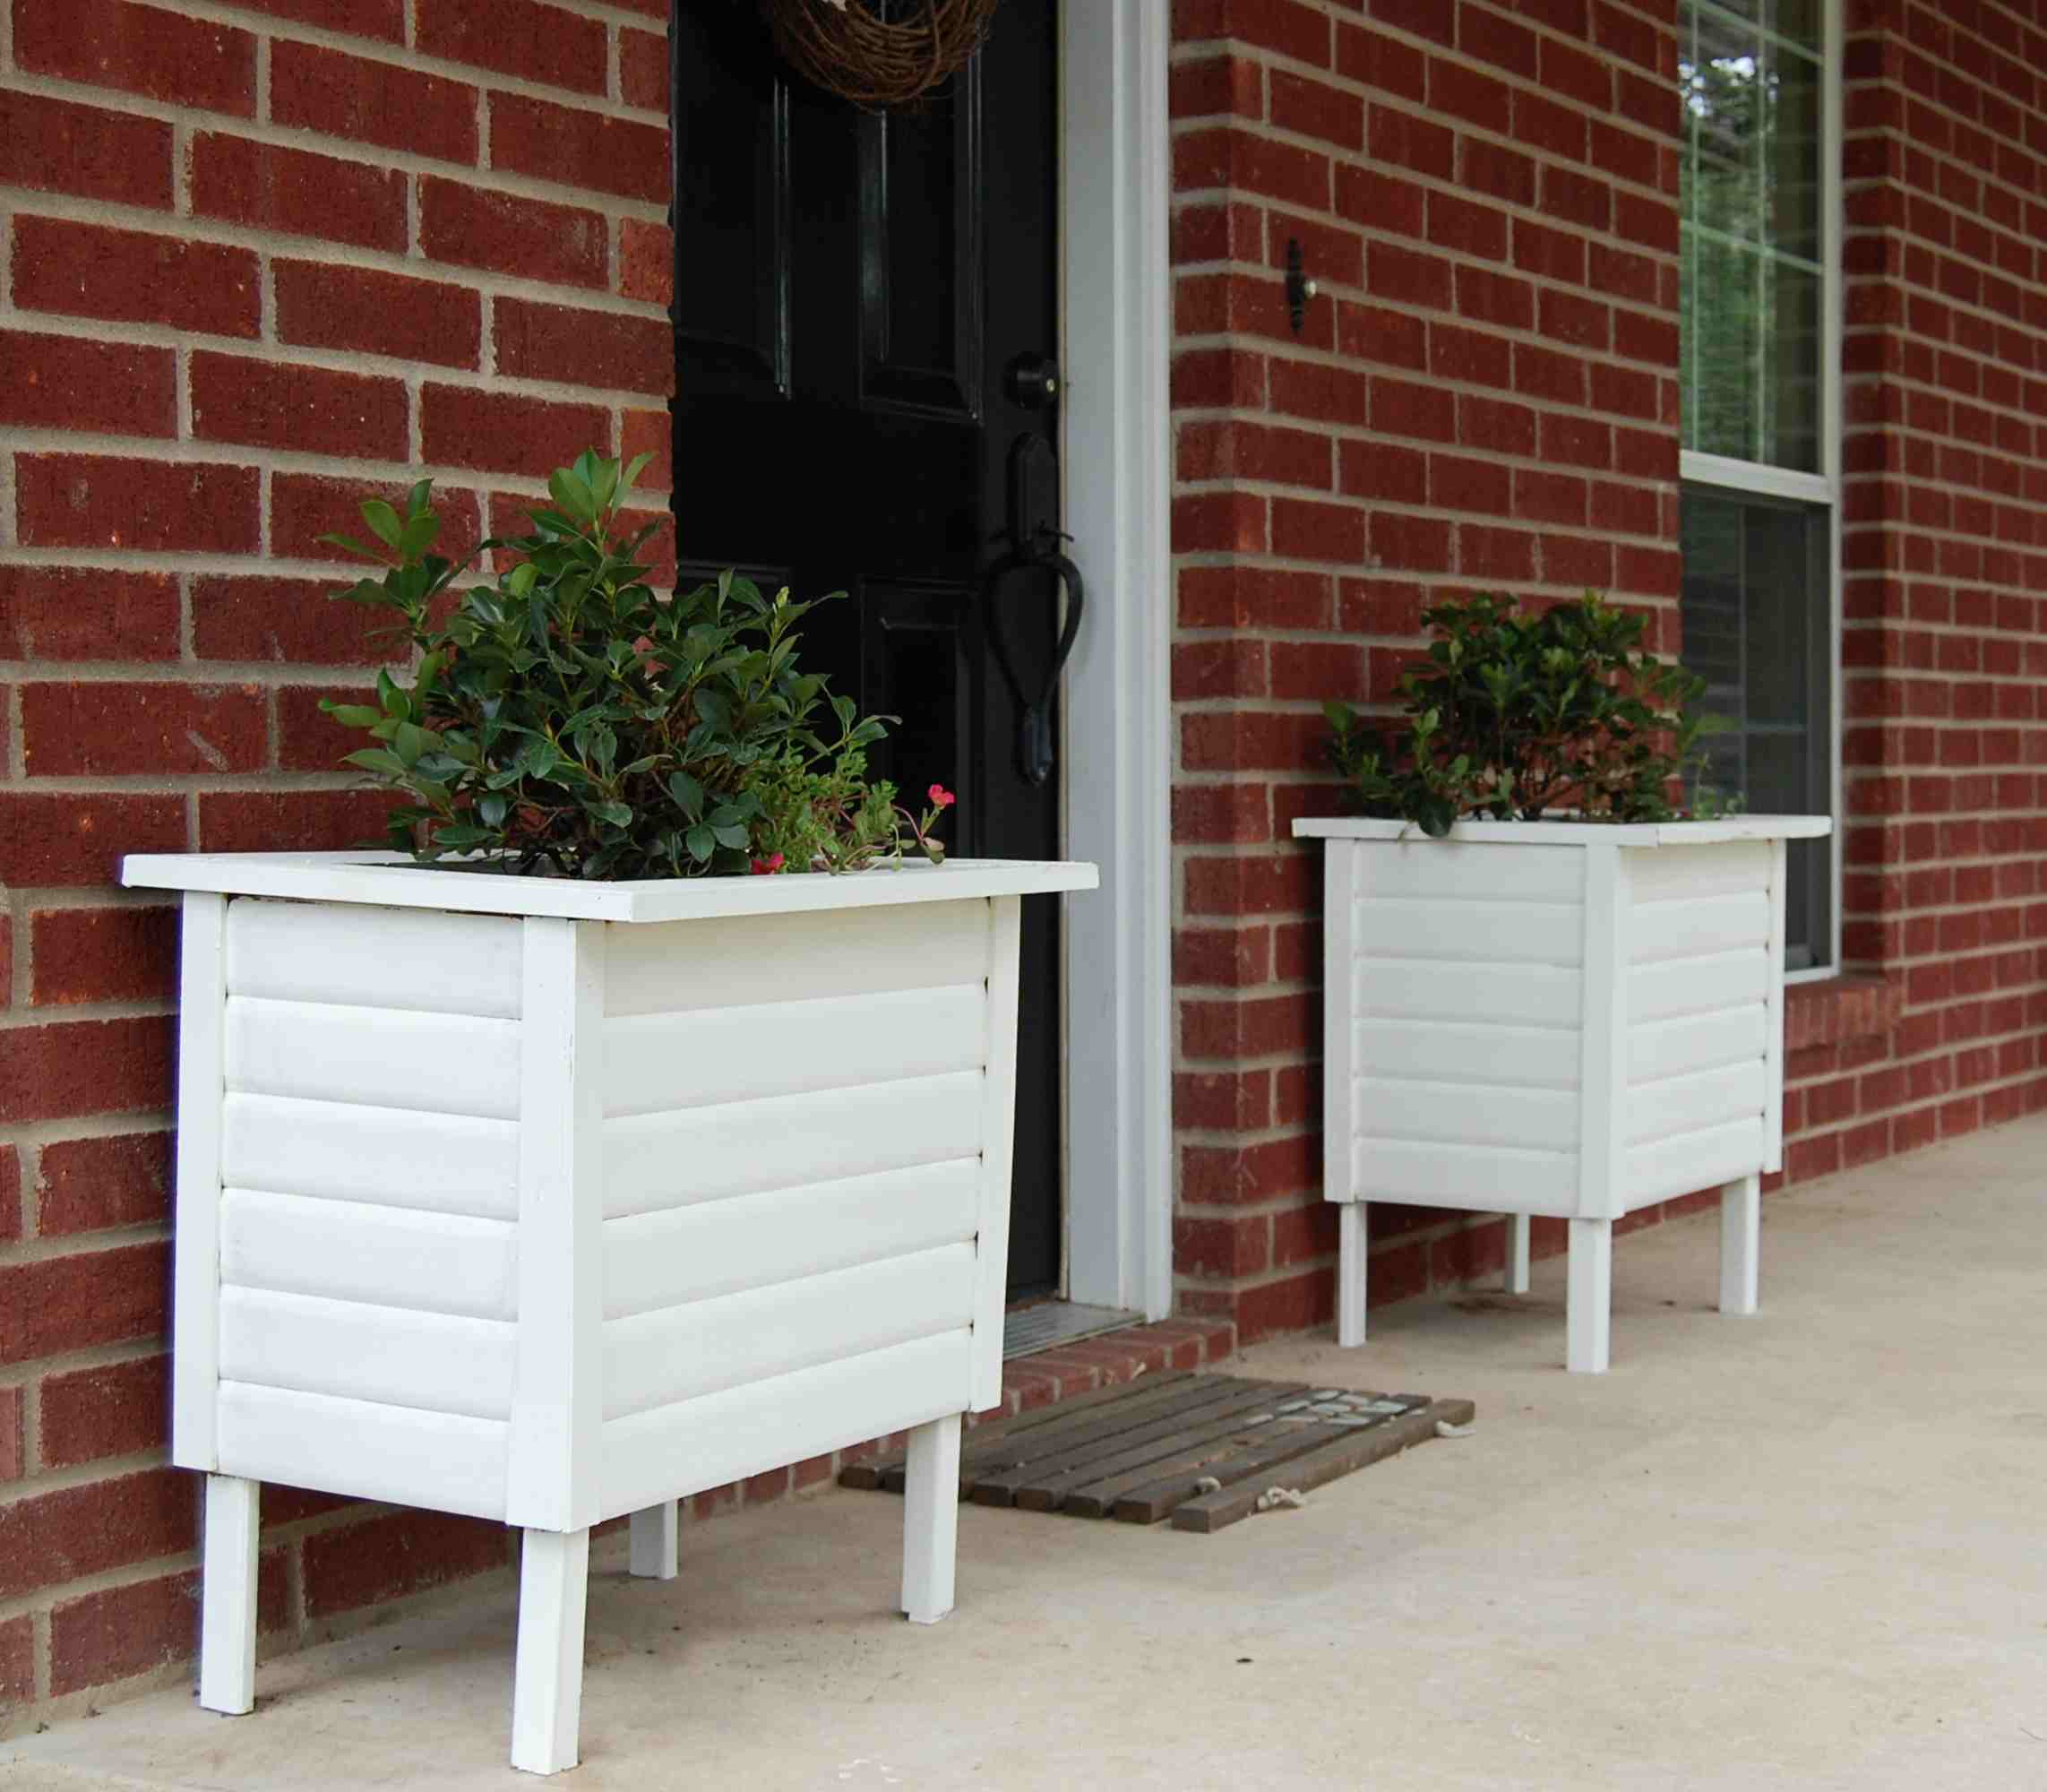 Two white planters by a front door